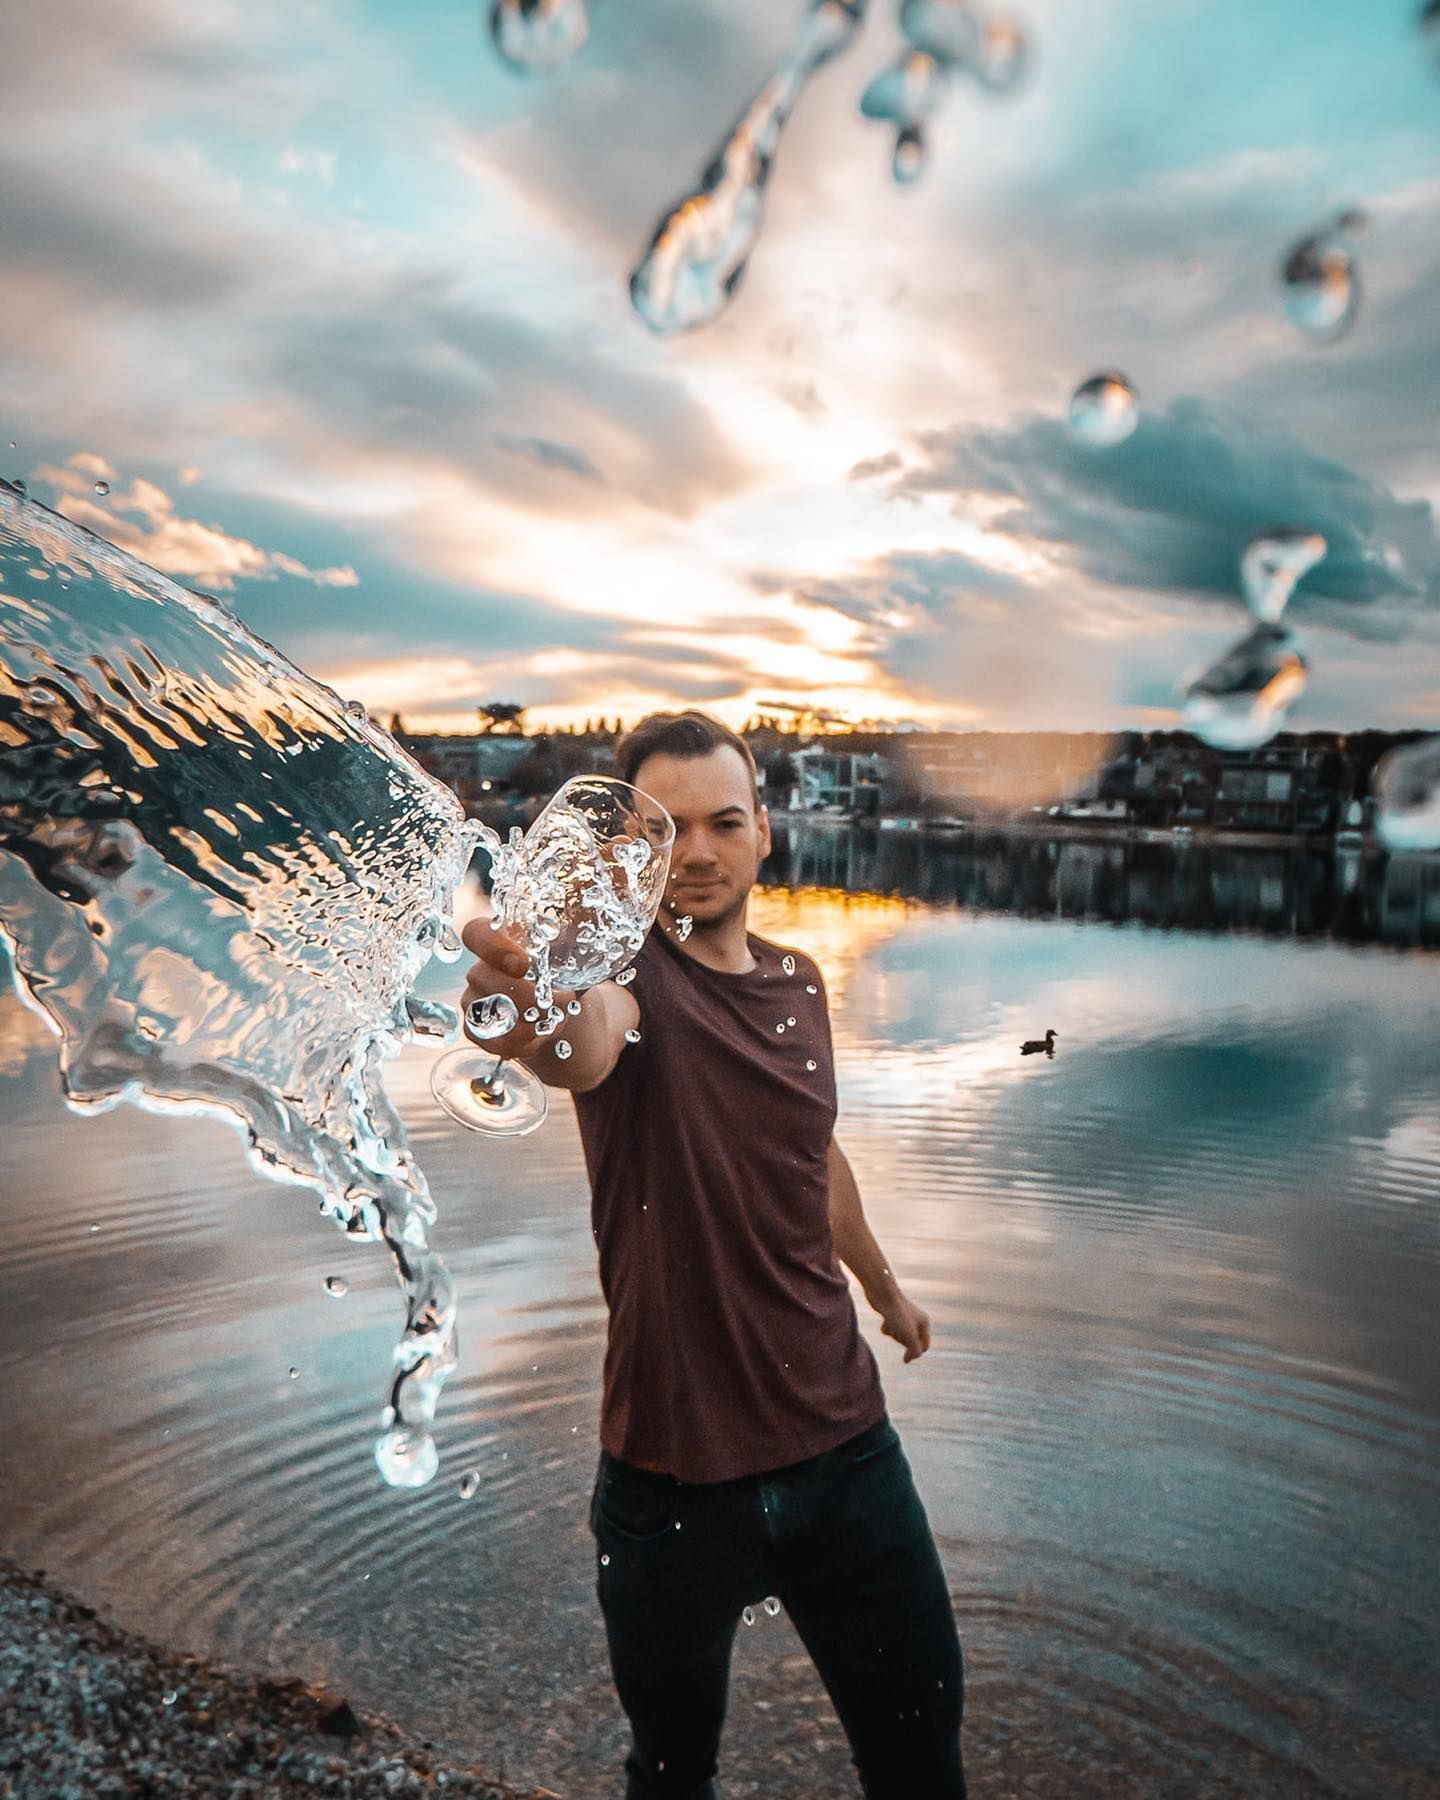 Creative photography ideas tips and tricks in 2020 ...